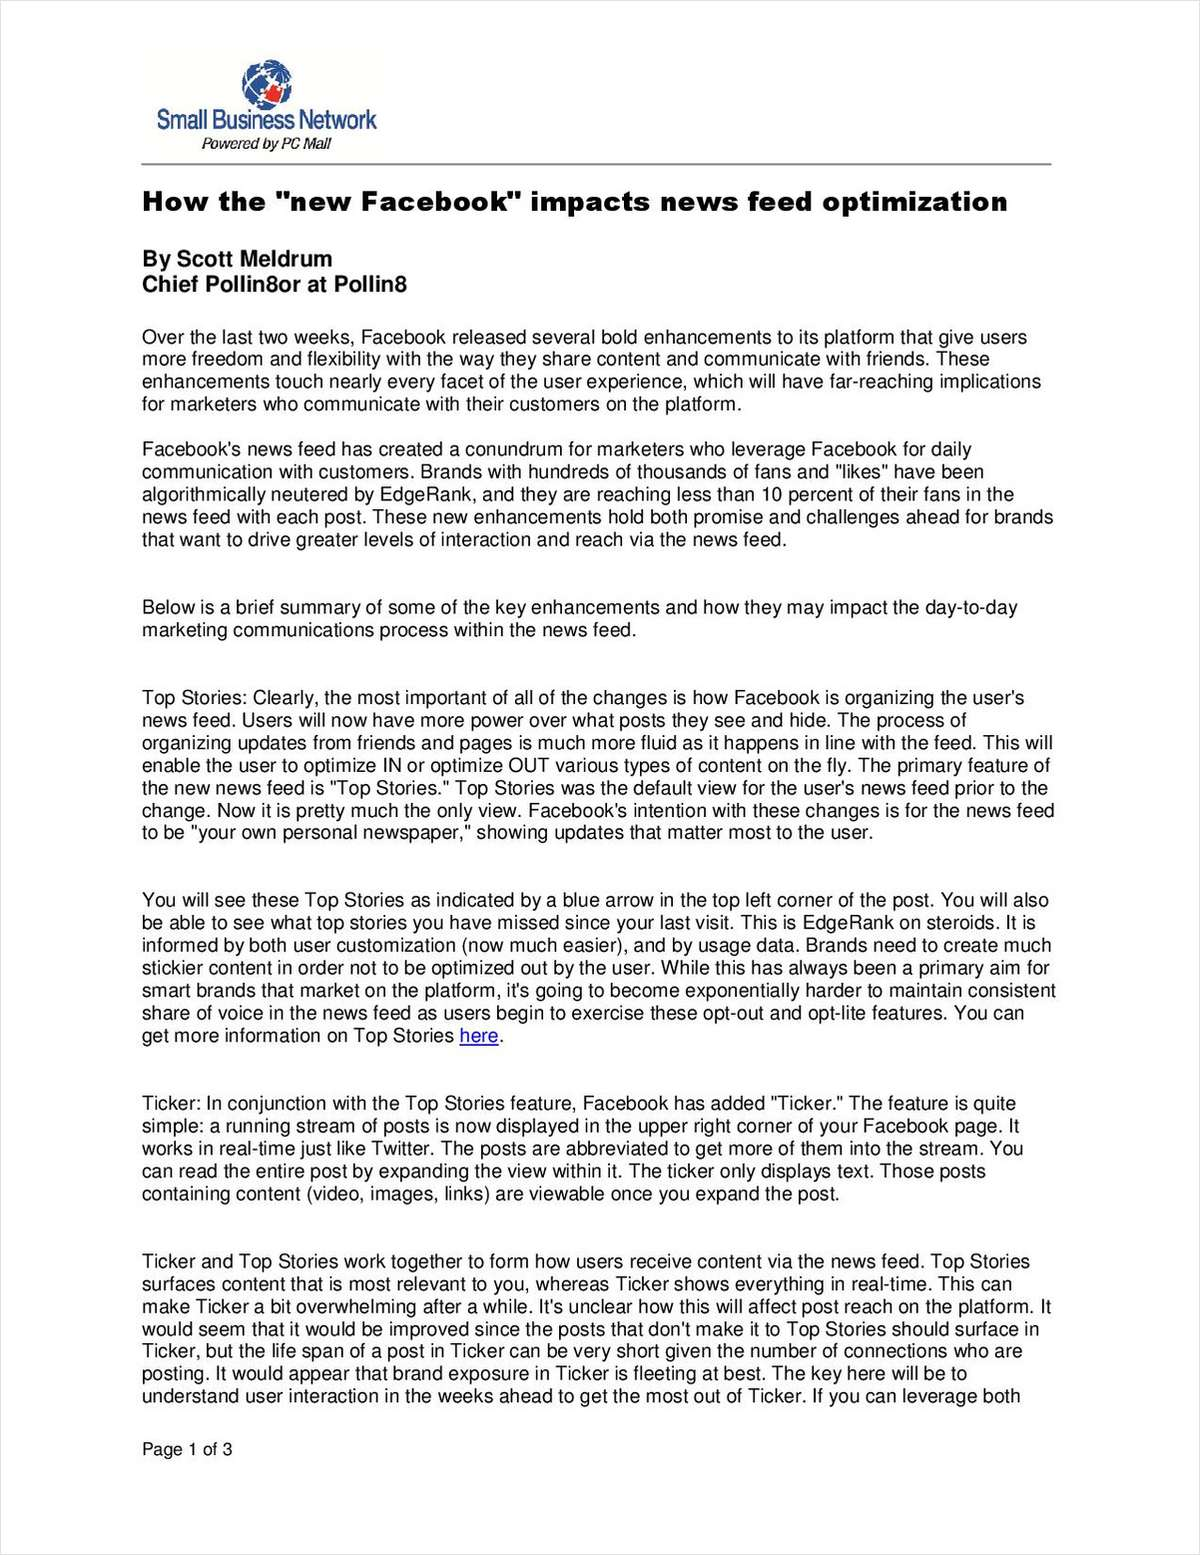 How The 'New Facebook' Impacts News Feed Optimization